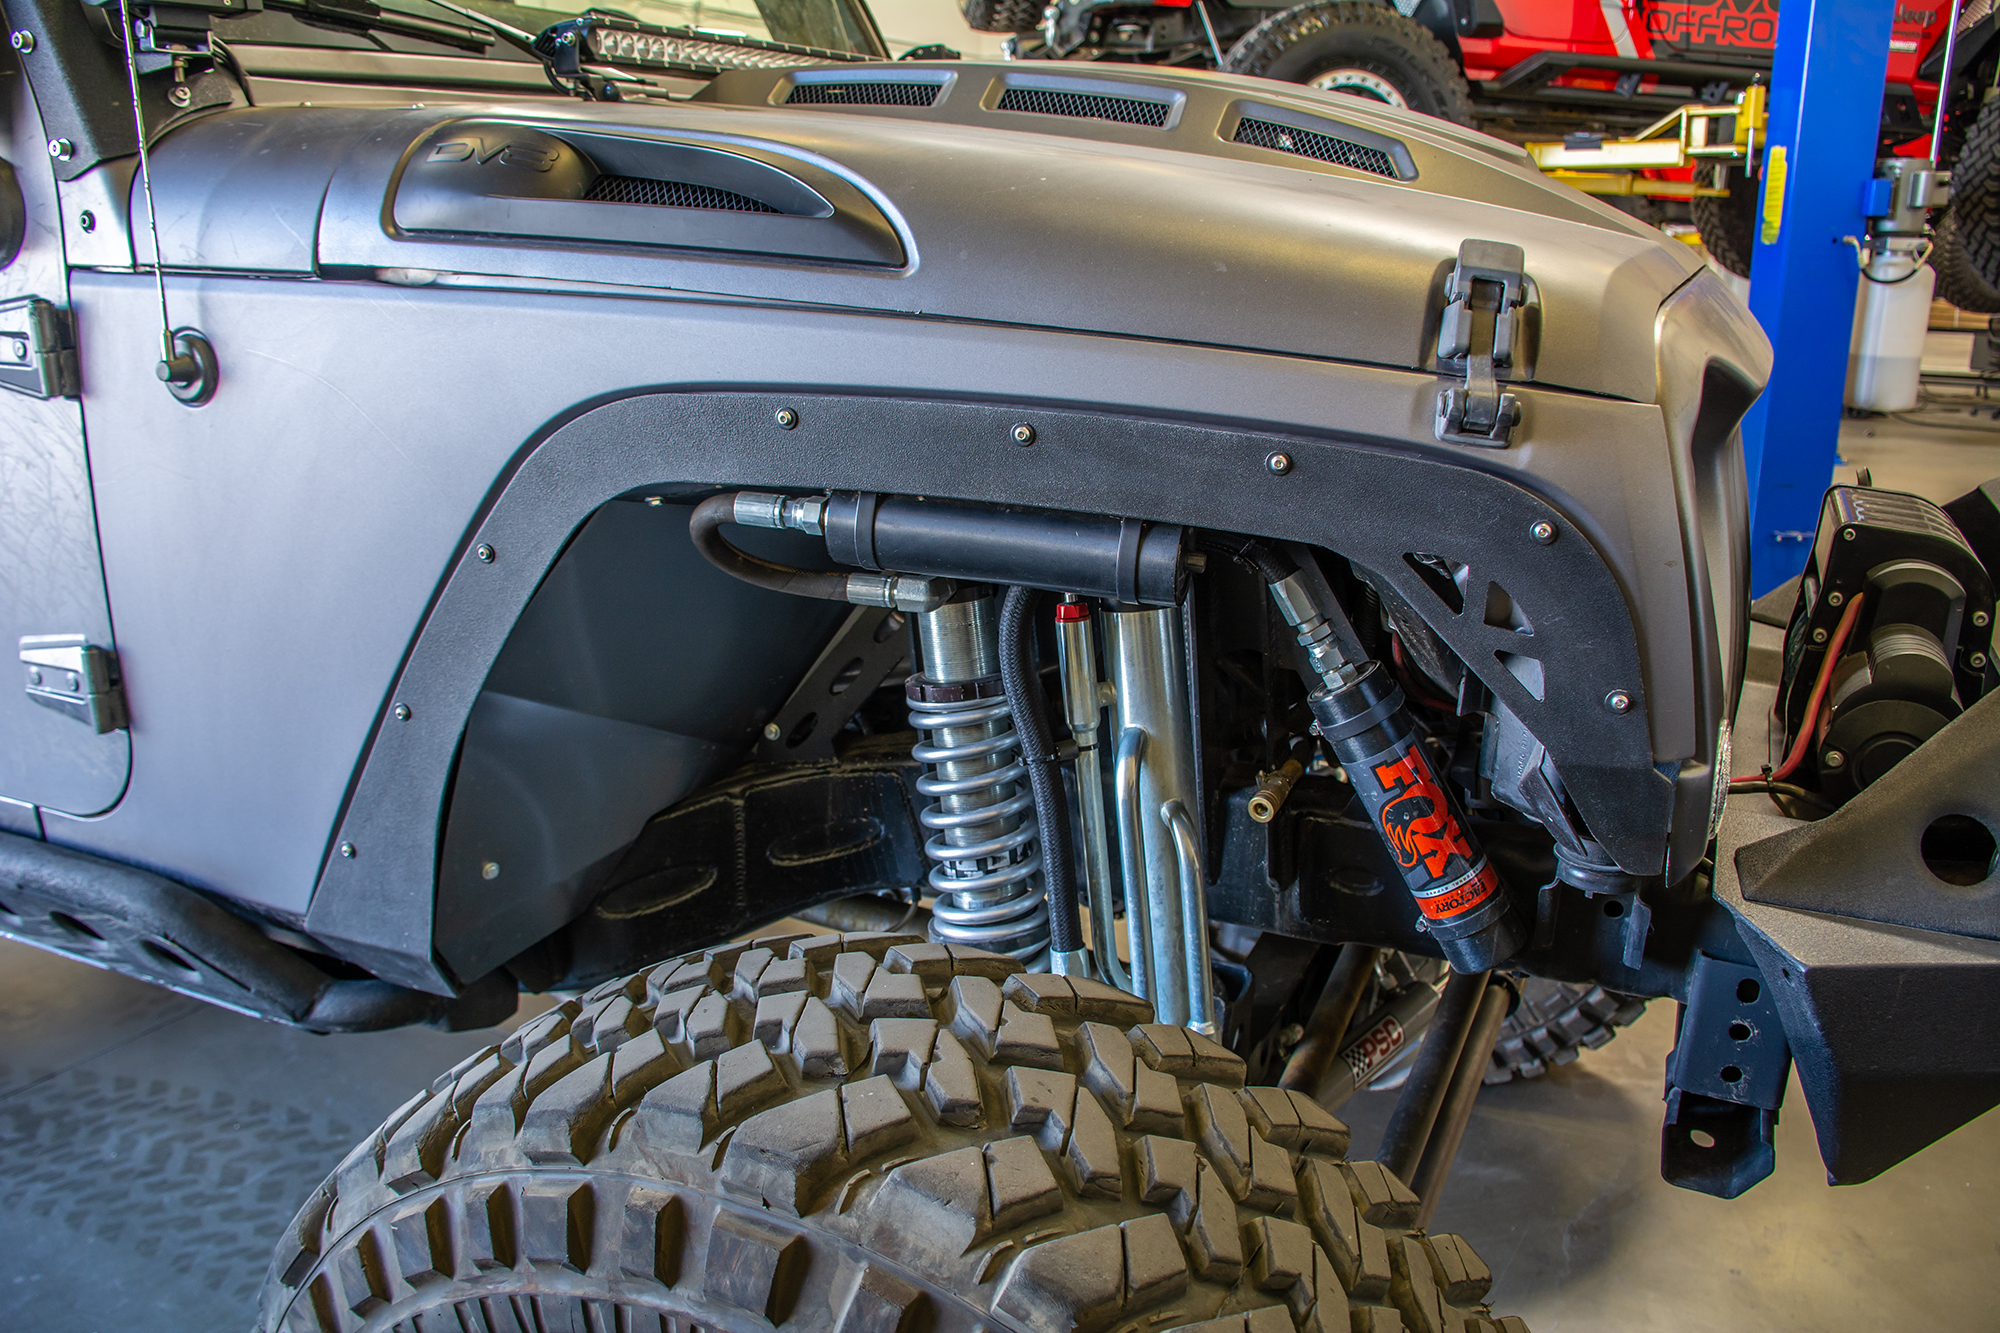 Jeep JK Fender Delete Kit (Front and Rear) 2 Door and 4 Door DV8 Offroad